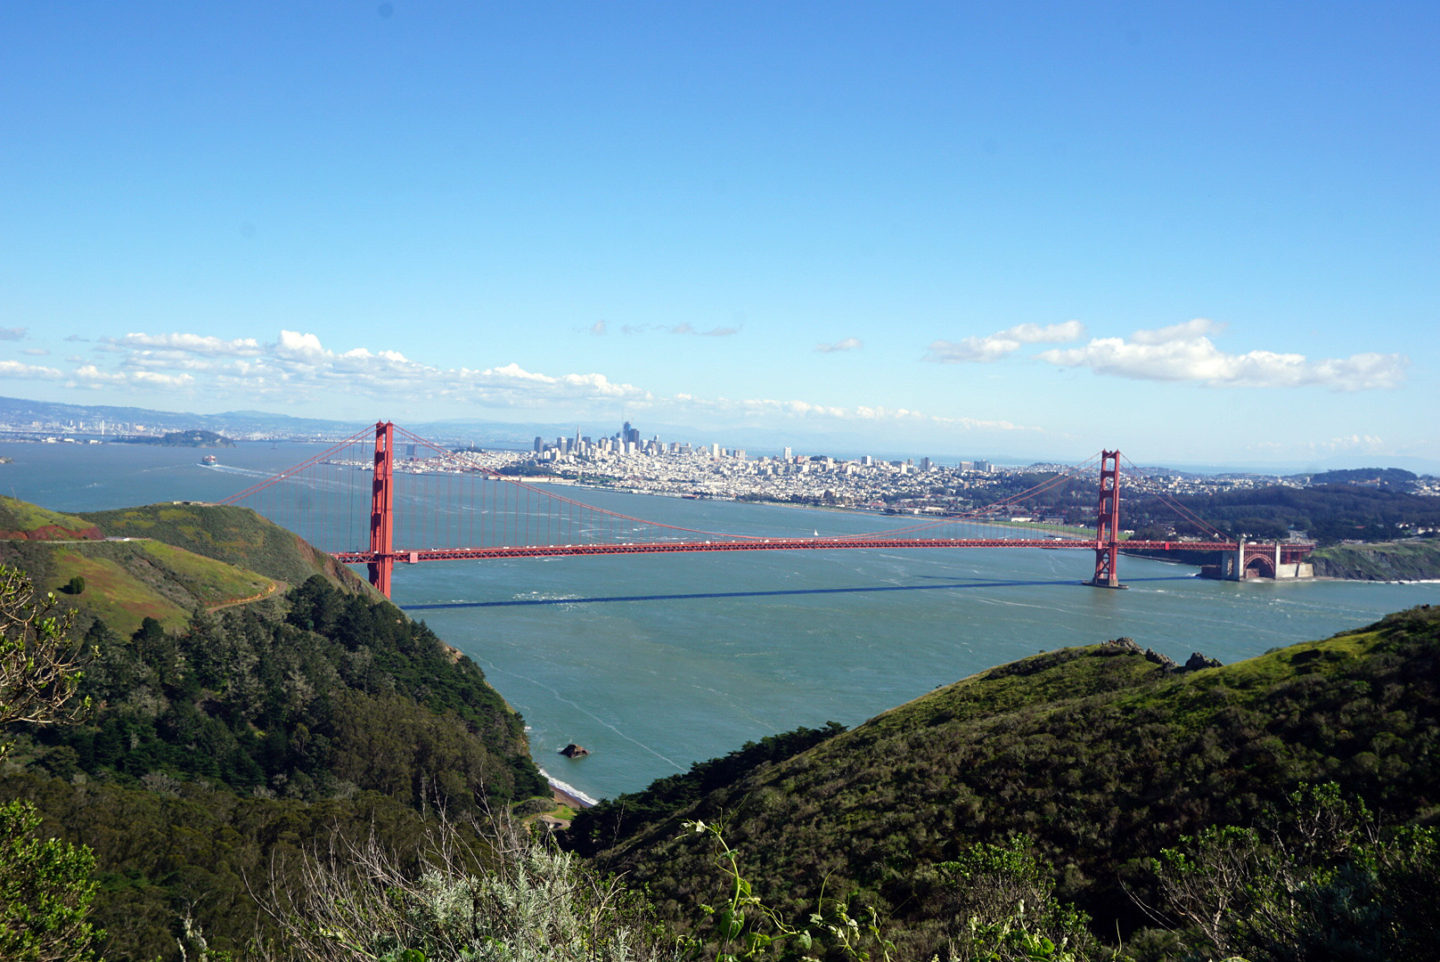 Travel With Me To: Golden Gate Bridge